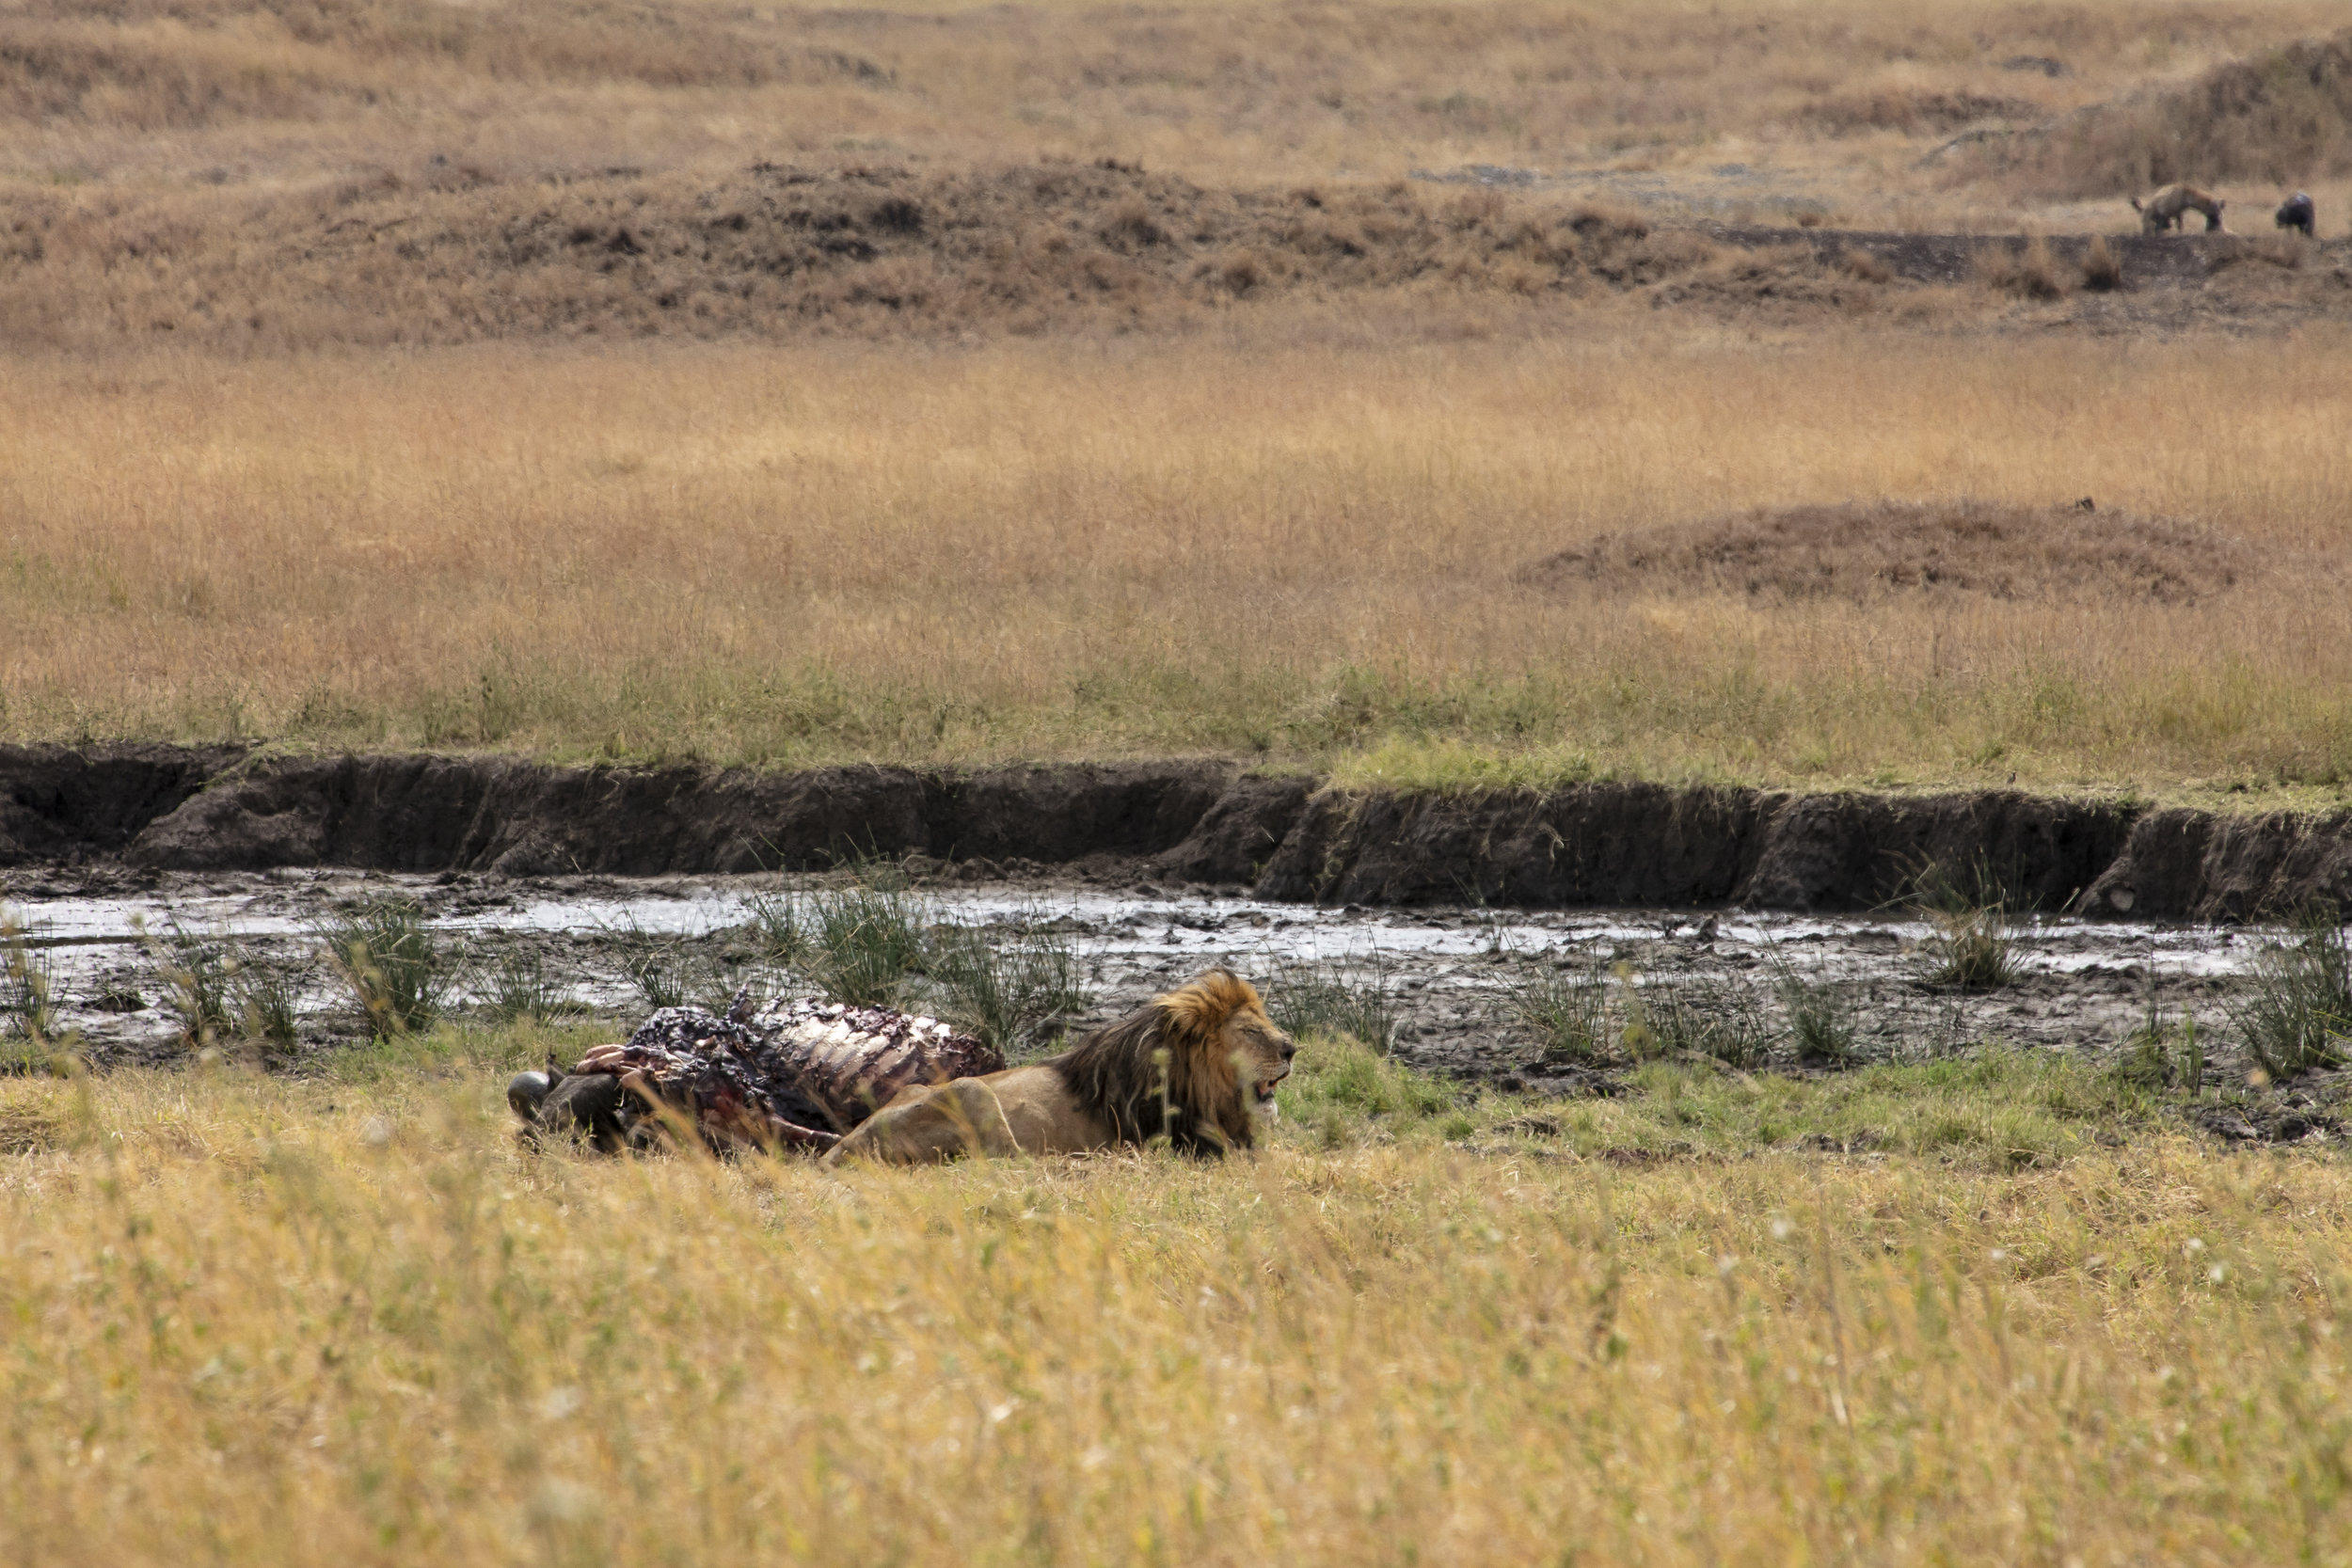 African Adventure - 30 July '18 - Serengeti National Park & Ngorongoro (Crater) Conservation Area - 001.JPG